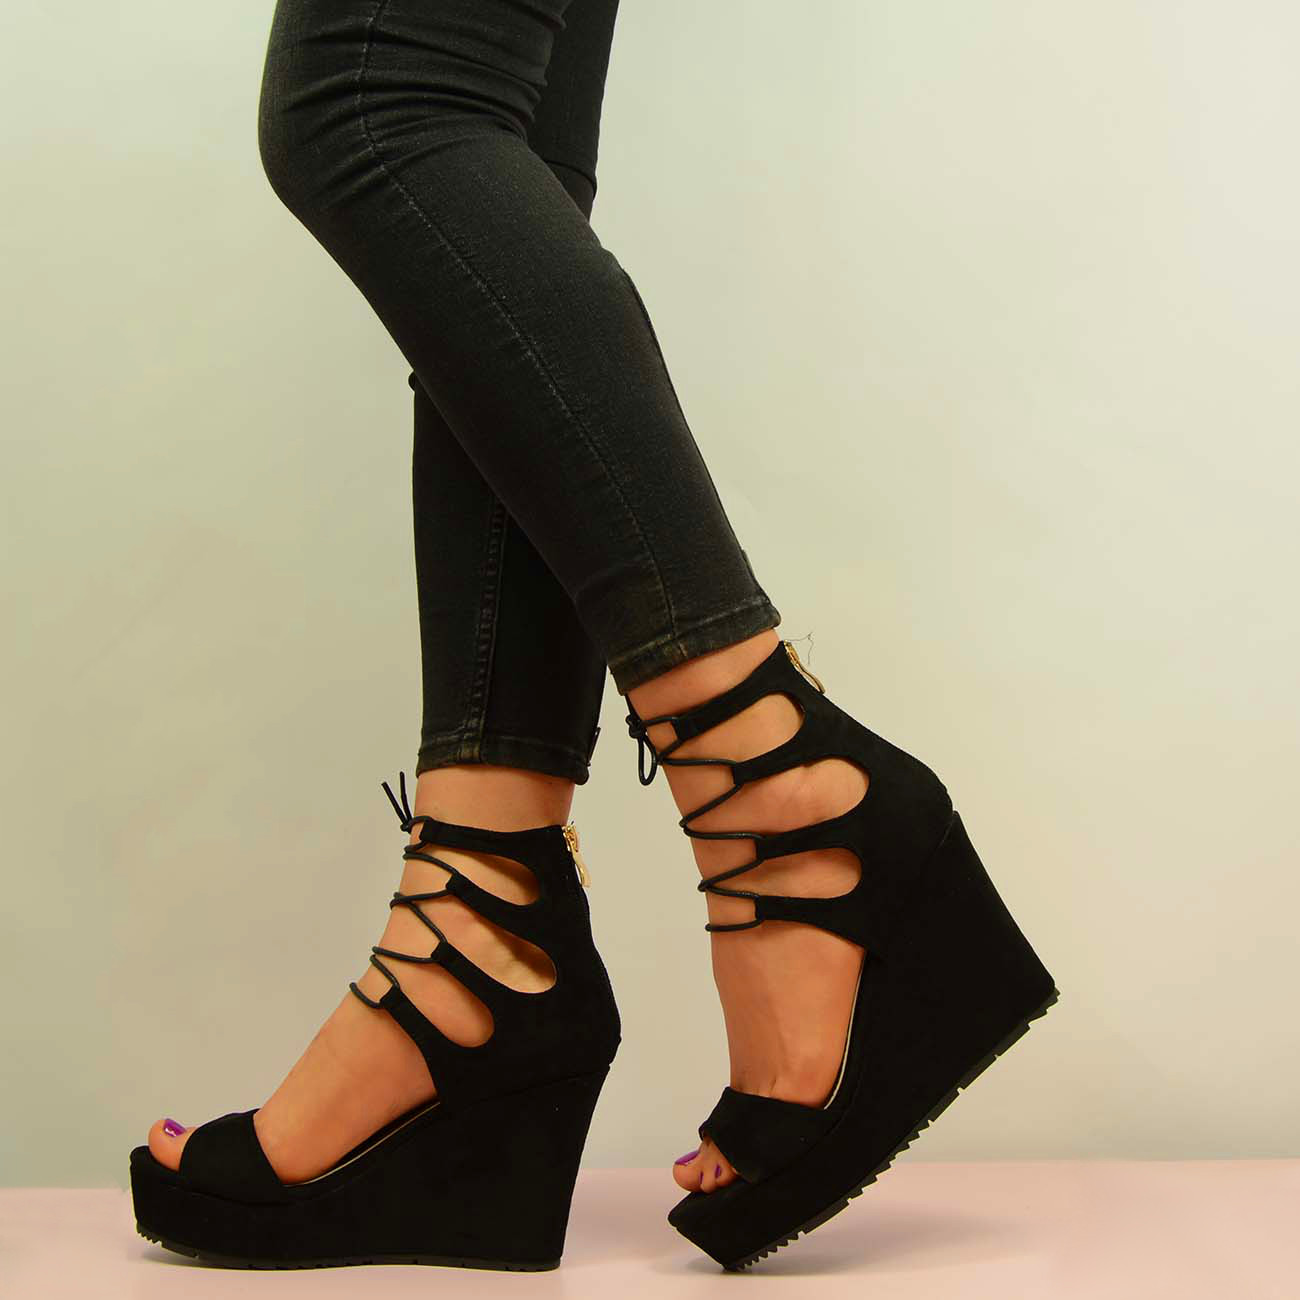 LADIES-WOMENS-LACE-UP-HIGH-HEEL-WEDGE-SANDALS-PLATFORM-SHOES-SIZE-UK